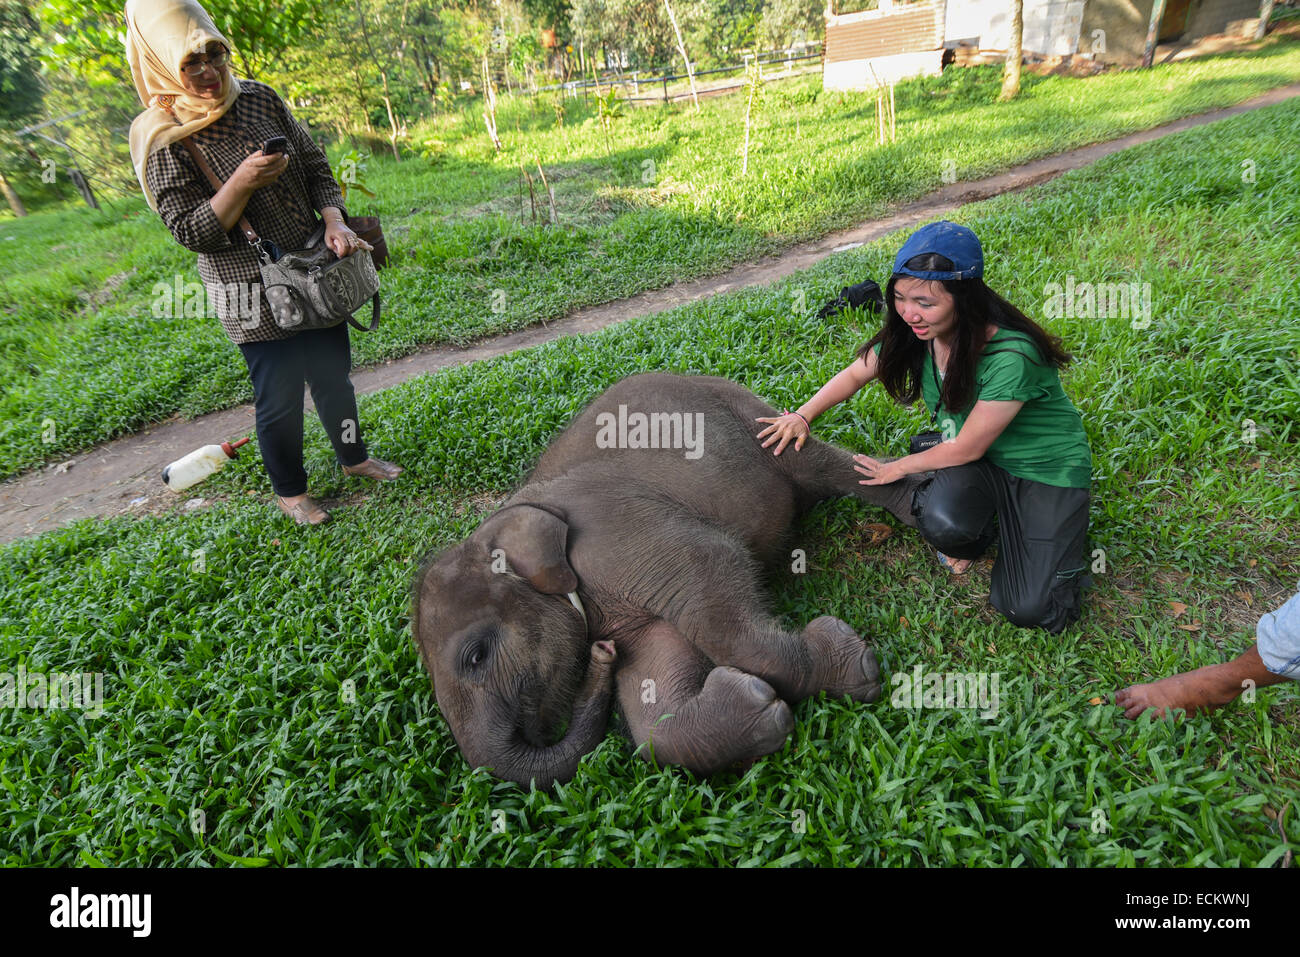 Conservation volunteers taking care of a Sumatran elephant infant named Yeti in Way Kambas National Park, Indonesia. - Stock Image